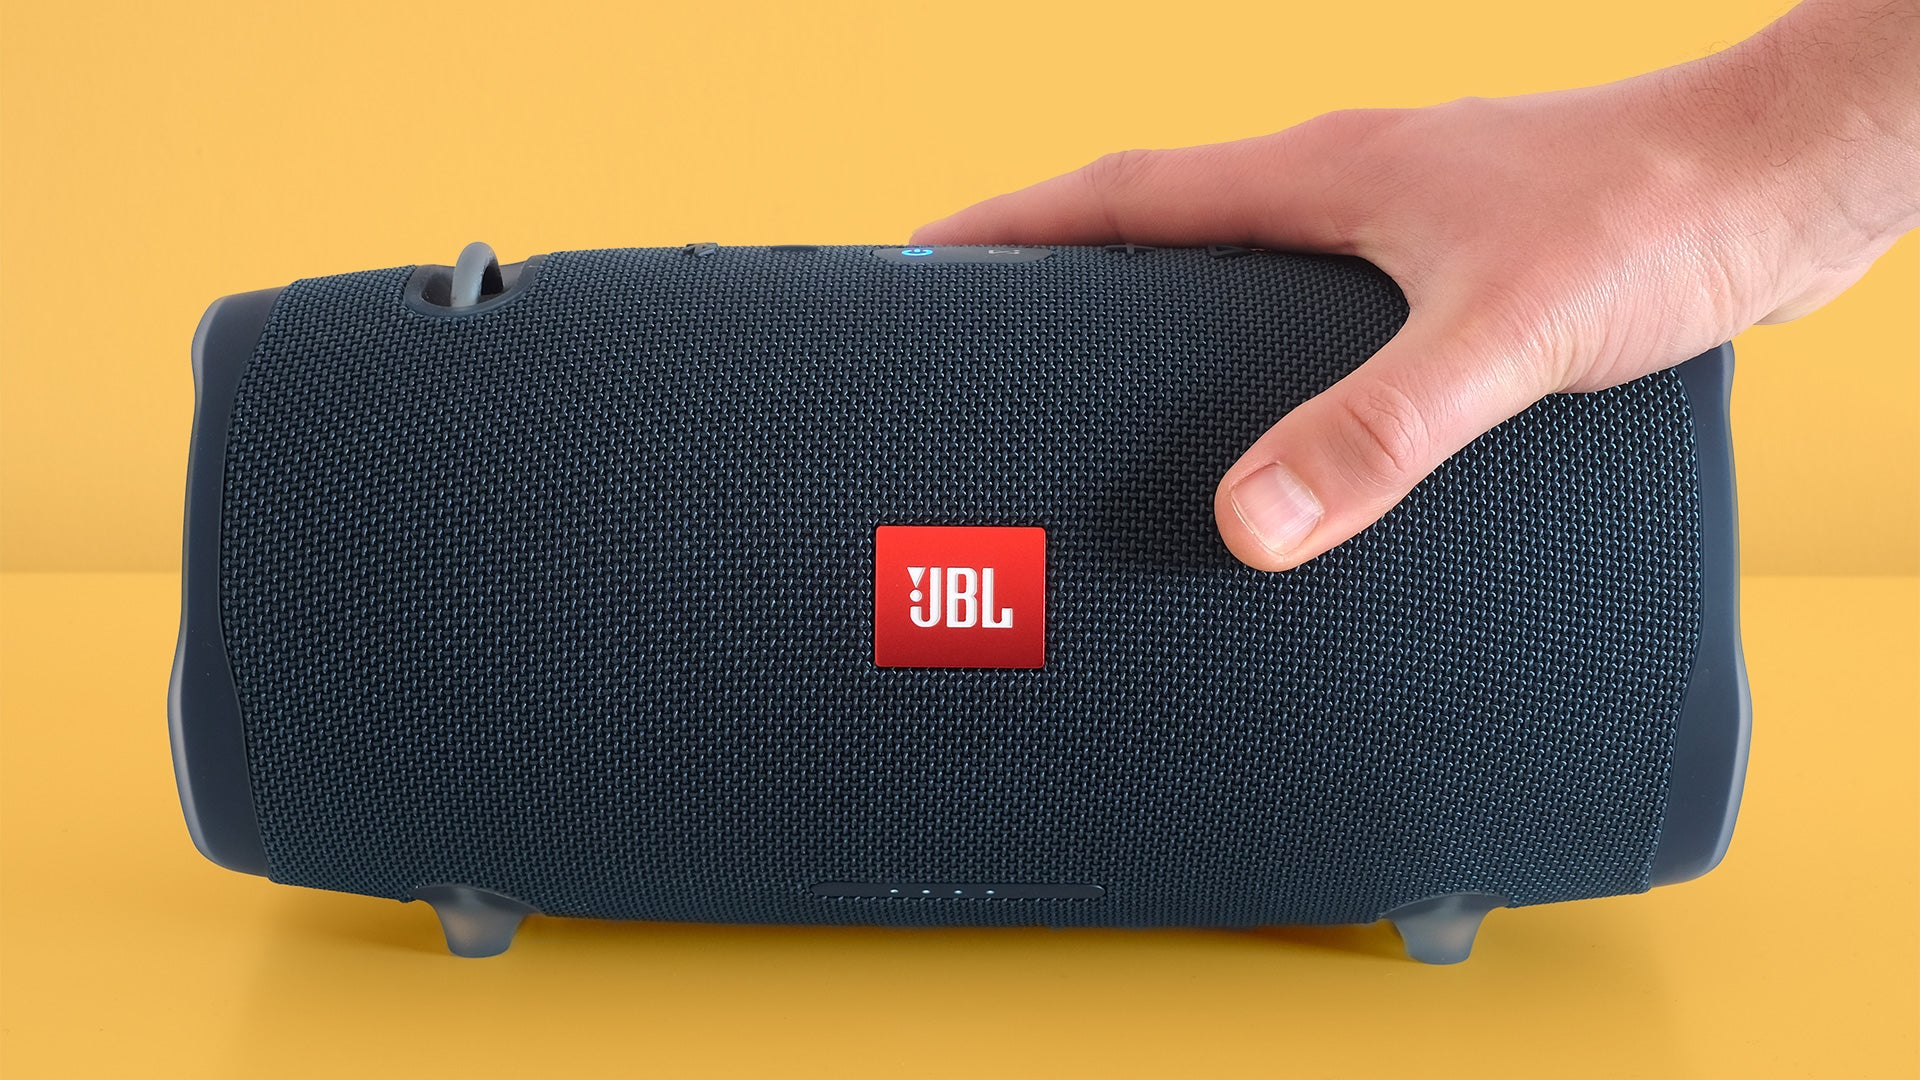 can i take portable speakers on a plane